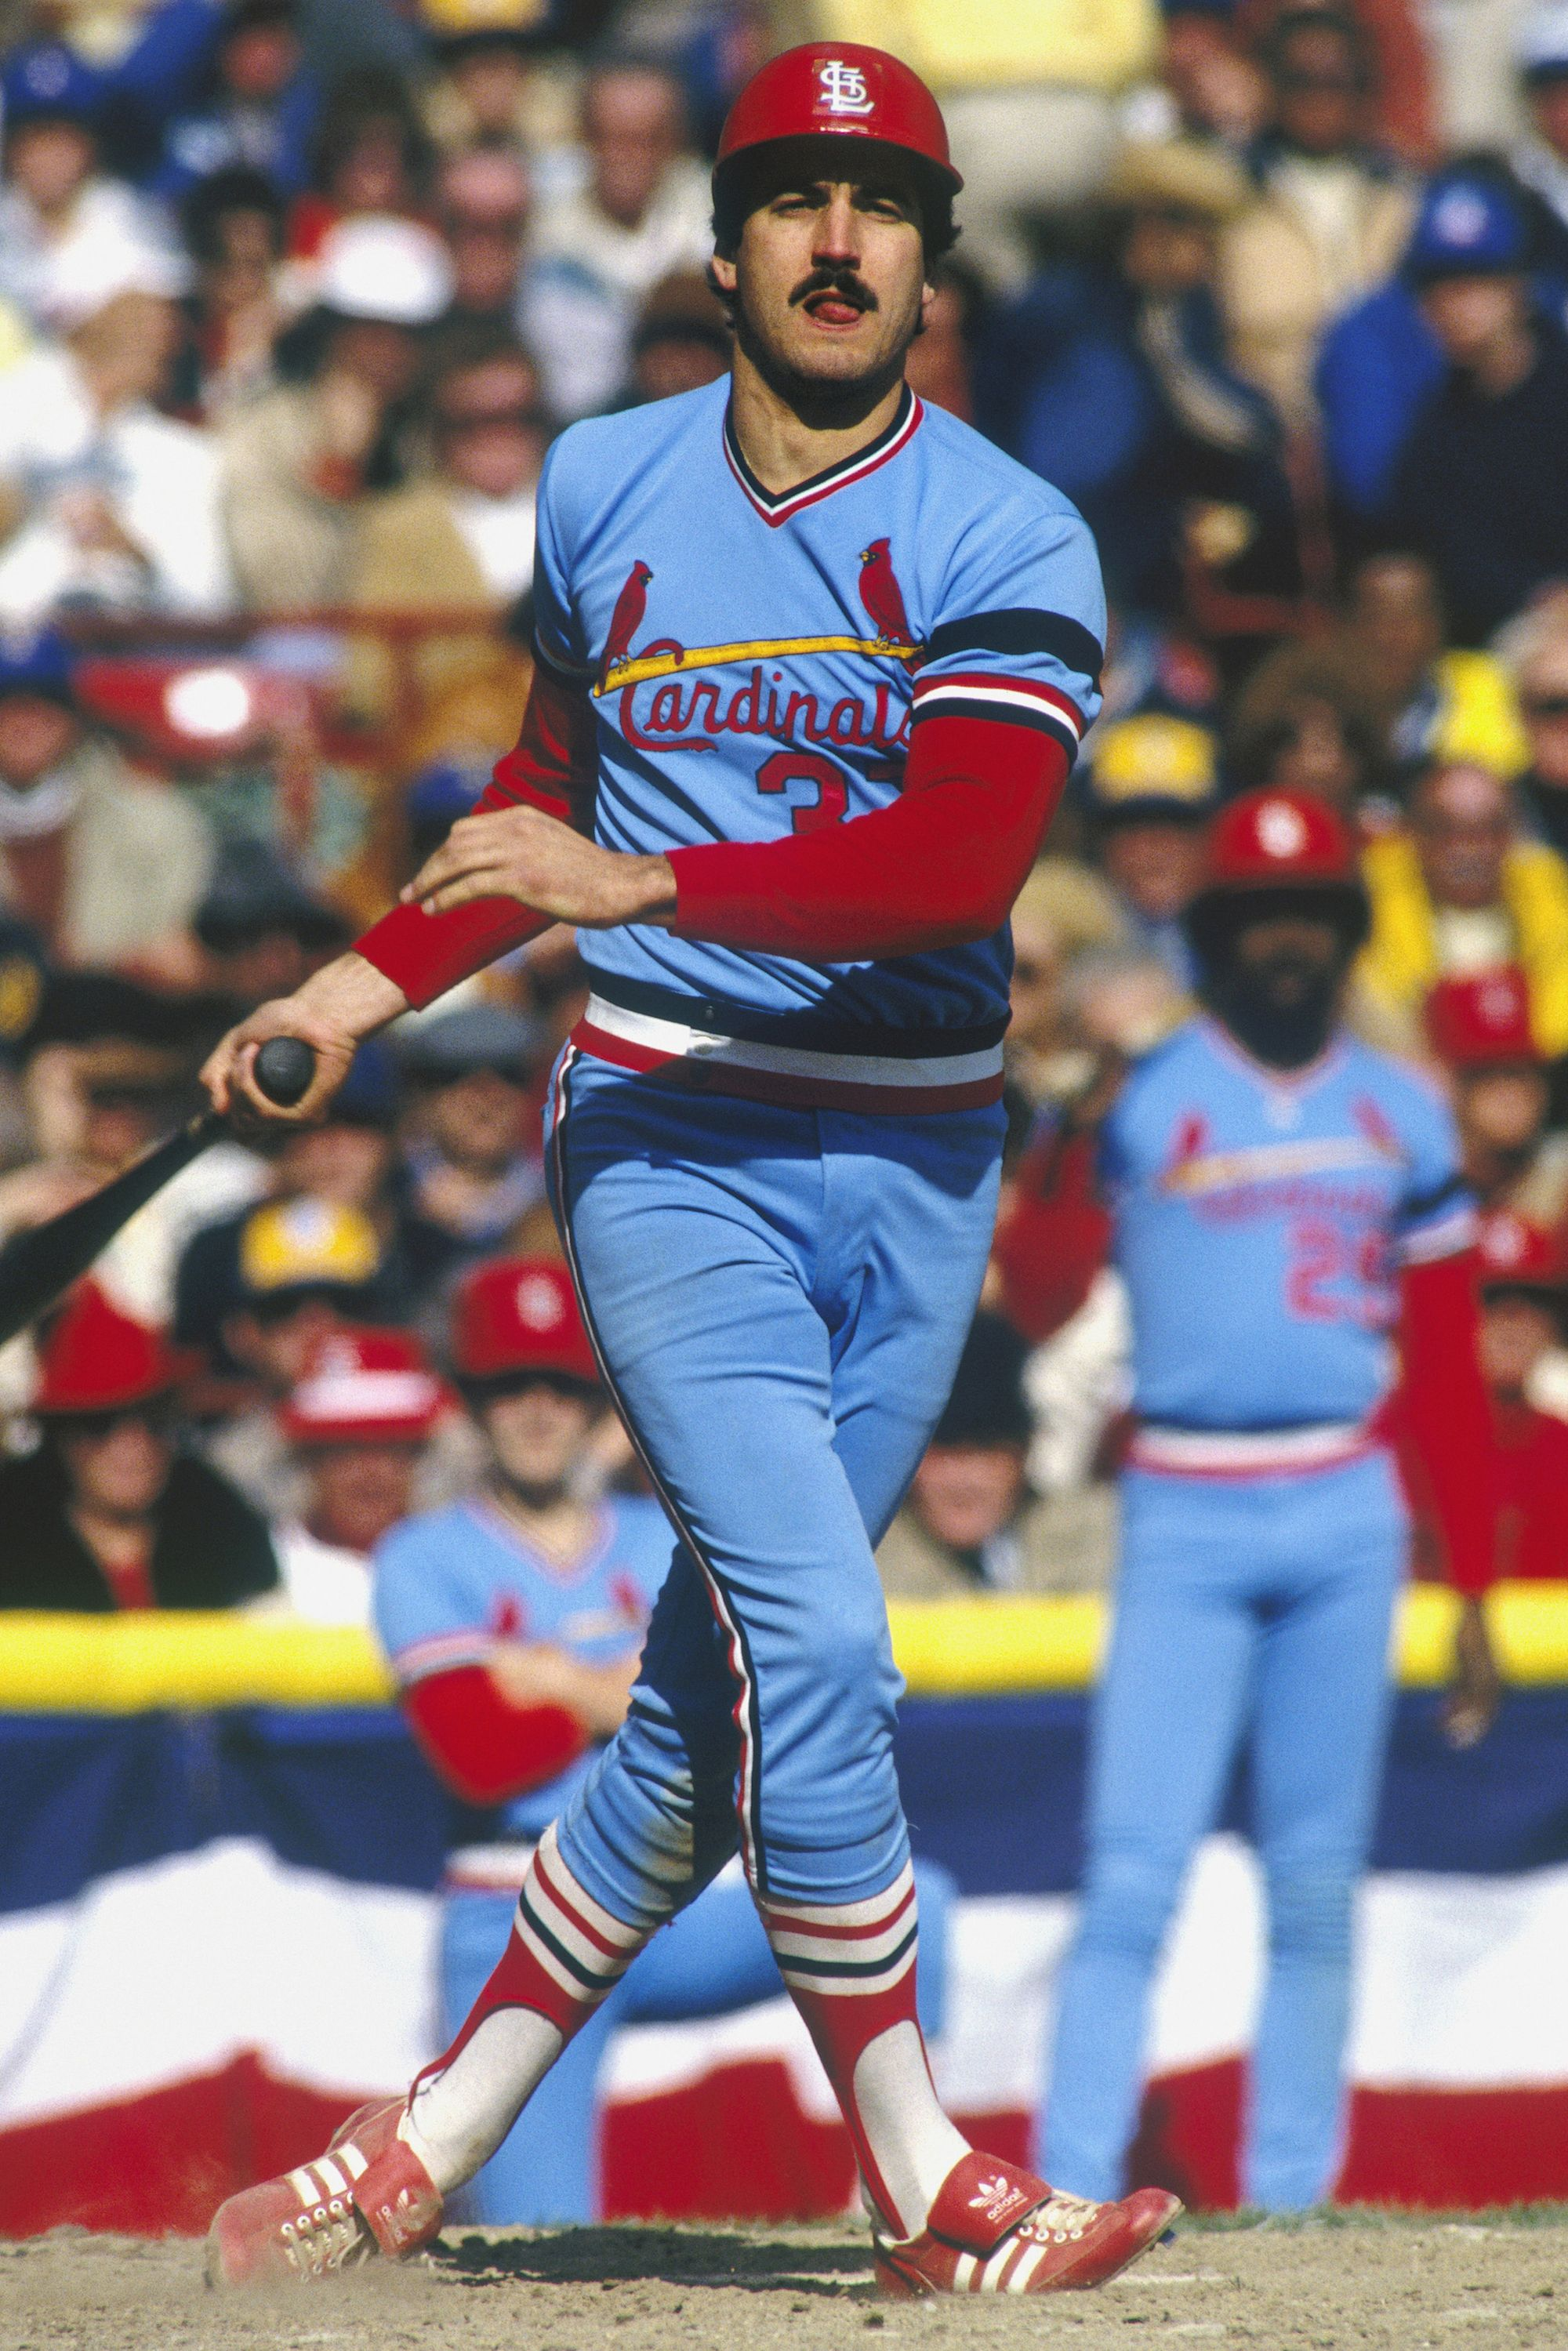 036be67cad1 Best and Worst Baseball Uniforms - History s Best and Worst Baseball  Uniforms